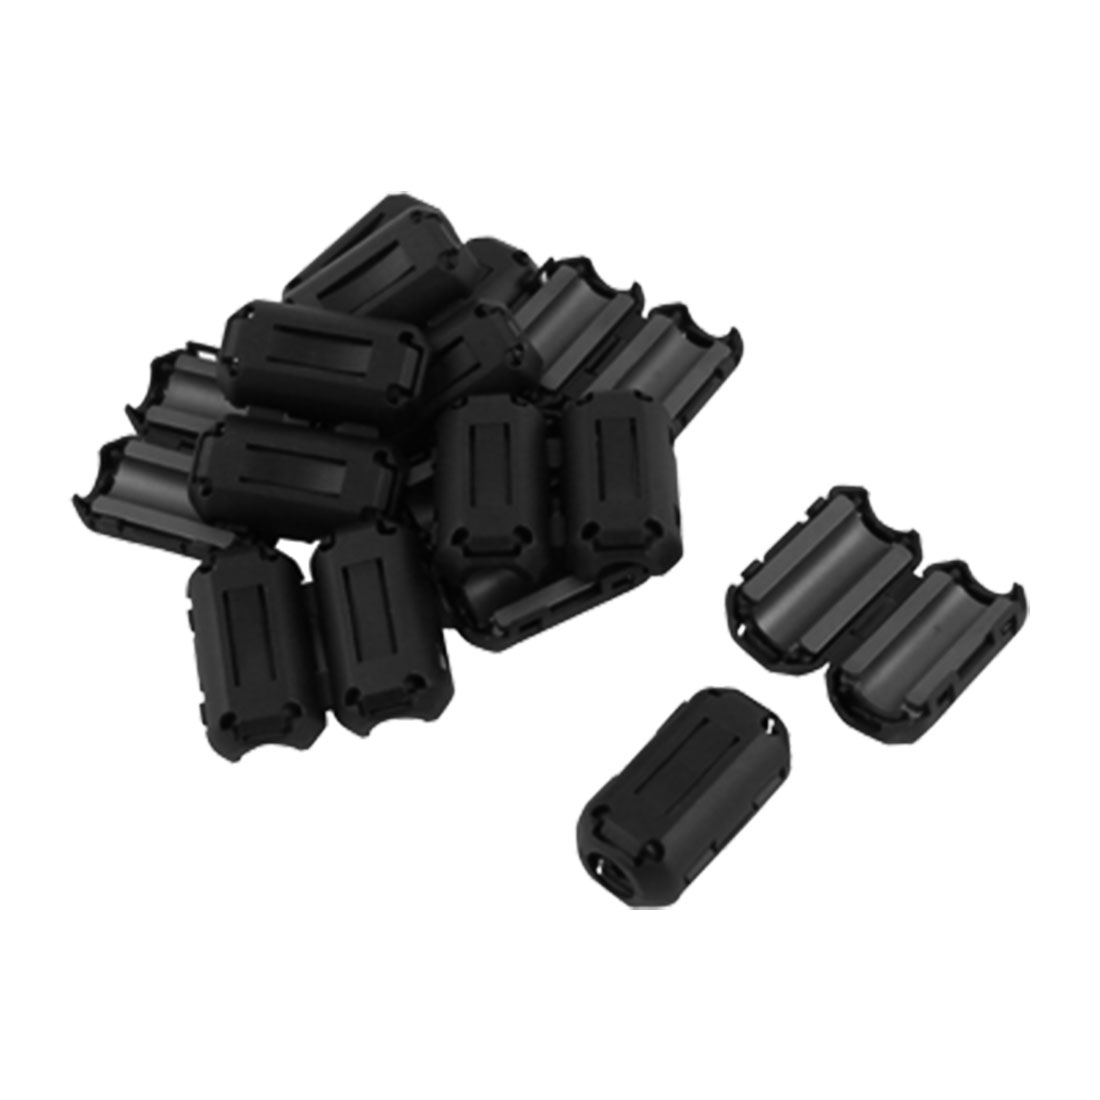 10 Pcs UF90B RFI EMI Noise Filter Clip-on Ferrite Ring Core Black for 9mm Diameter Cable